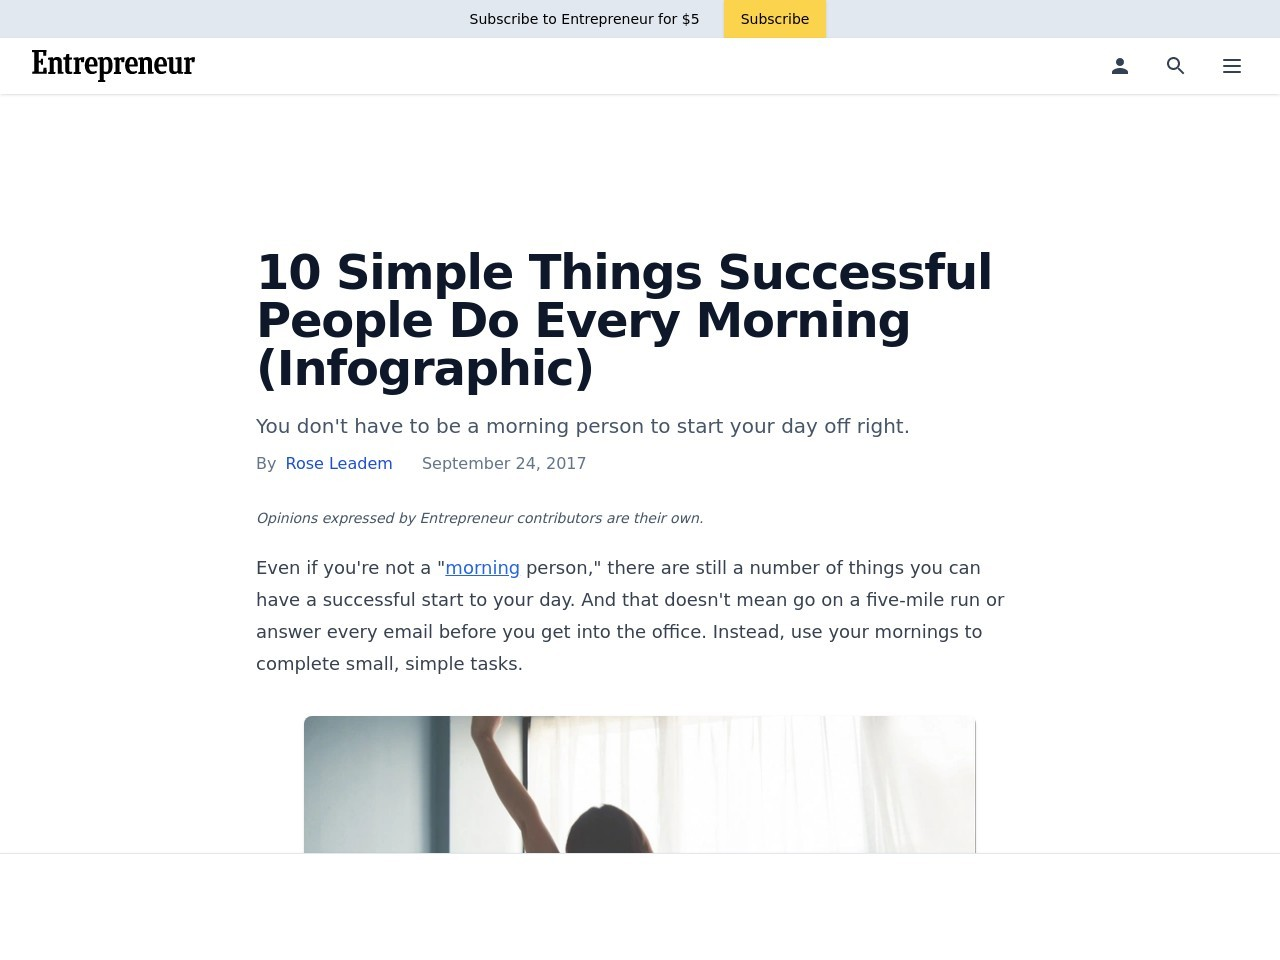 10 Simple Things Successful People Do Every Morning (Infographic)